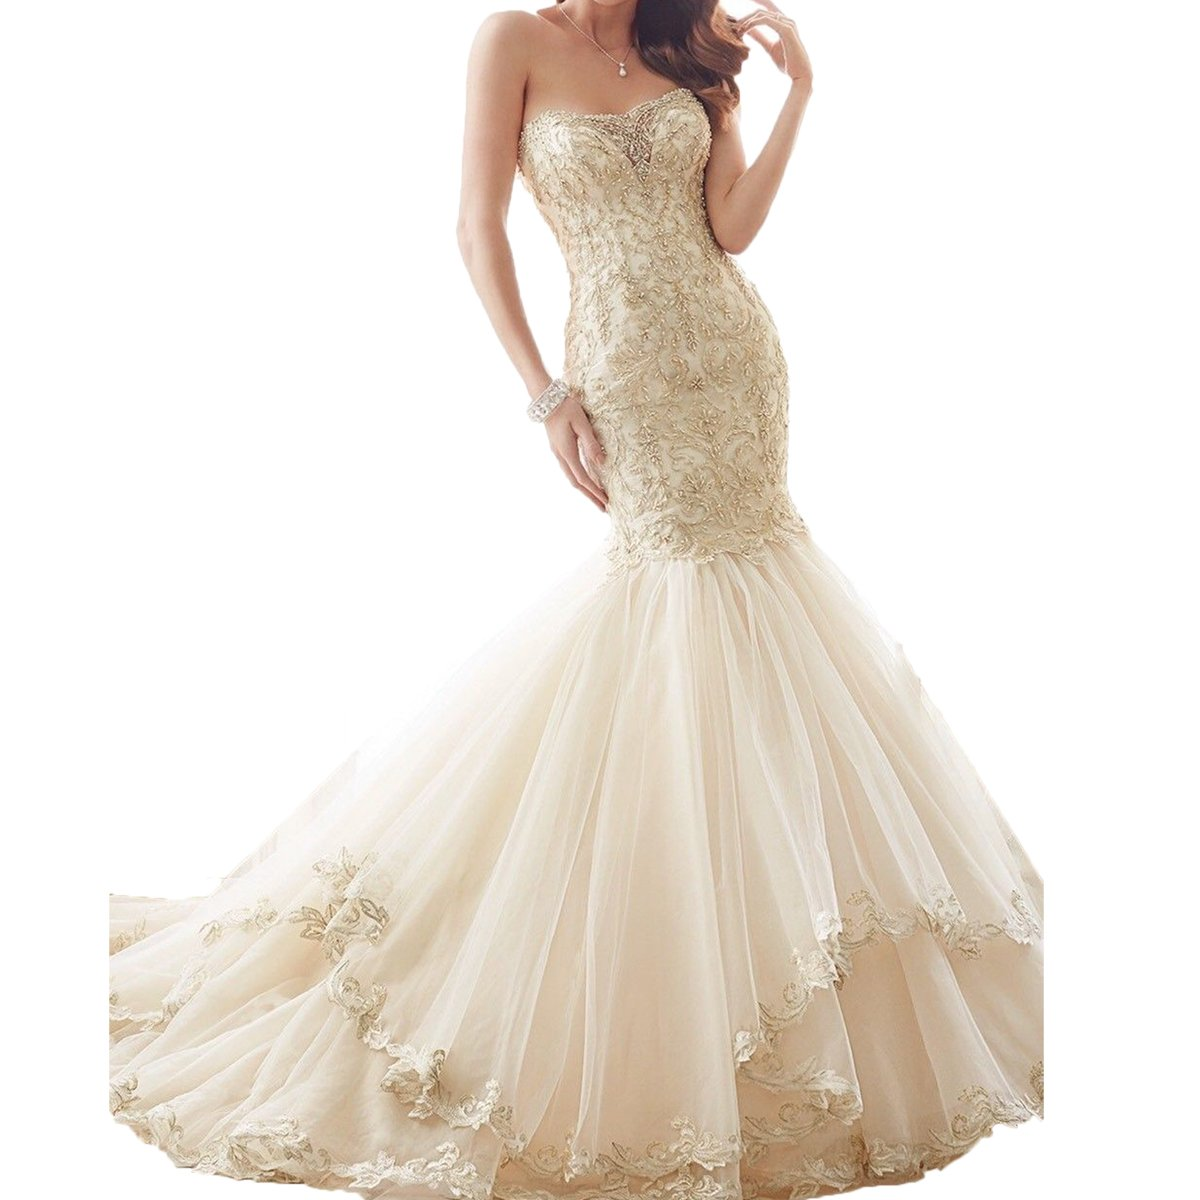 Thrsaeyi Womens Gold Lace Mermaid Wedding Dresses Strapless Beaded